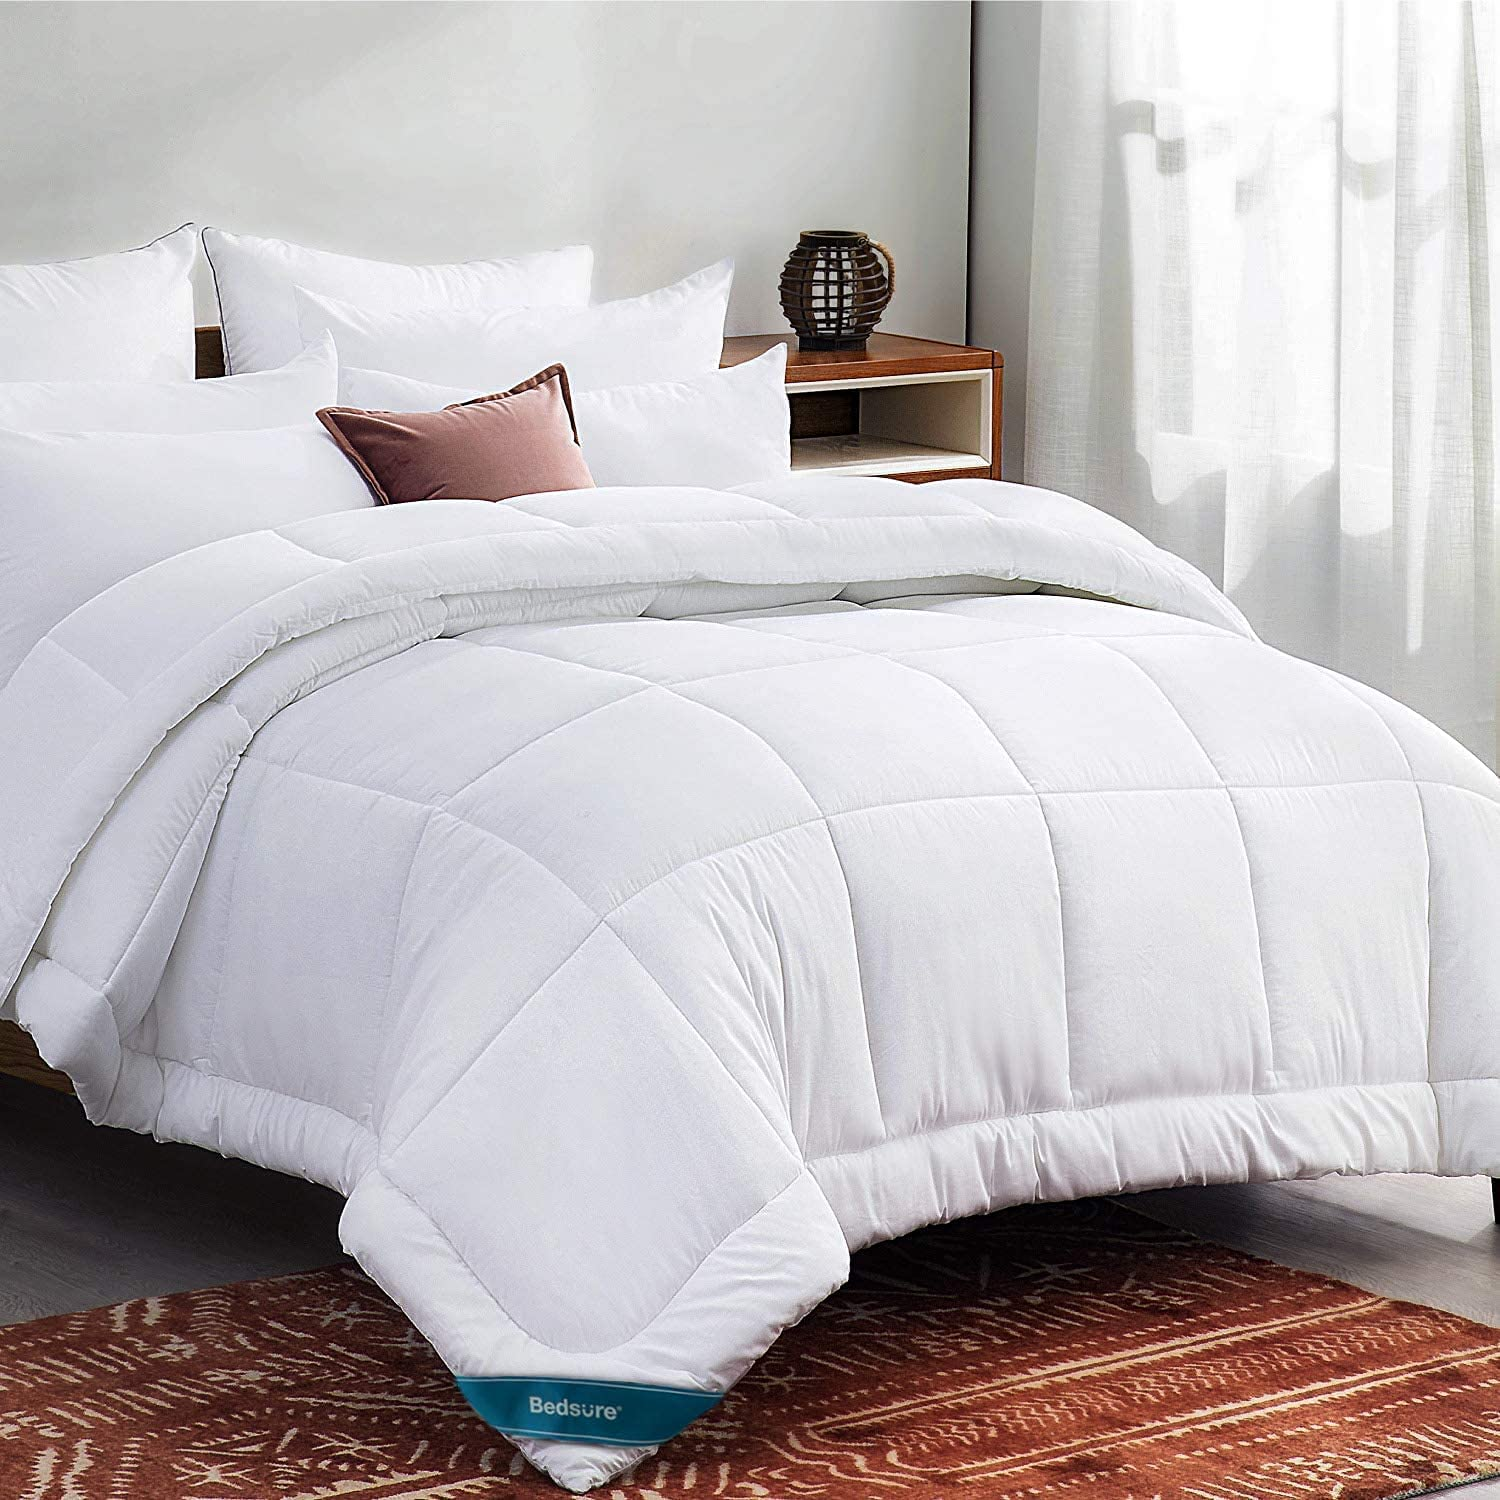 Bedsure Twin Comforter Duvet Insert White   Quilted Bedding Comforters for  Twin Bed,All Season Down Alternative Comforter Twin Size with Corner Tabs